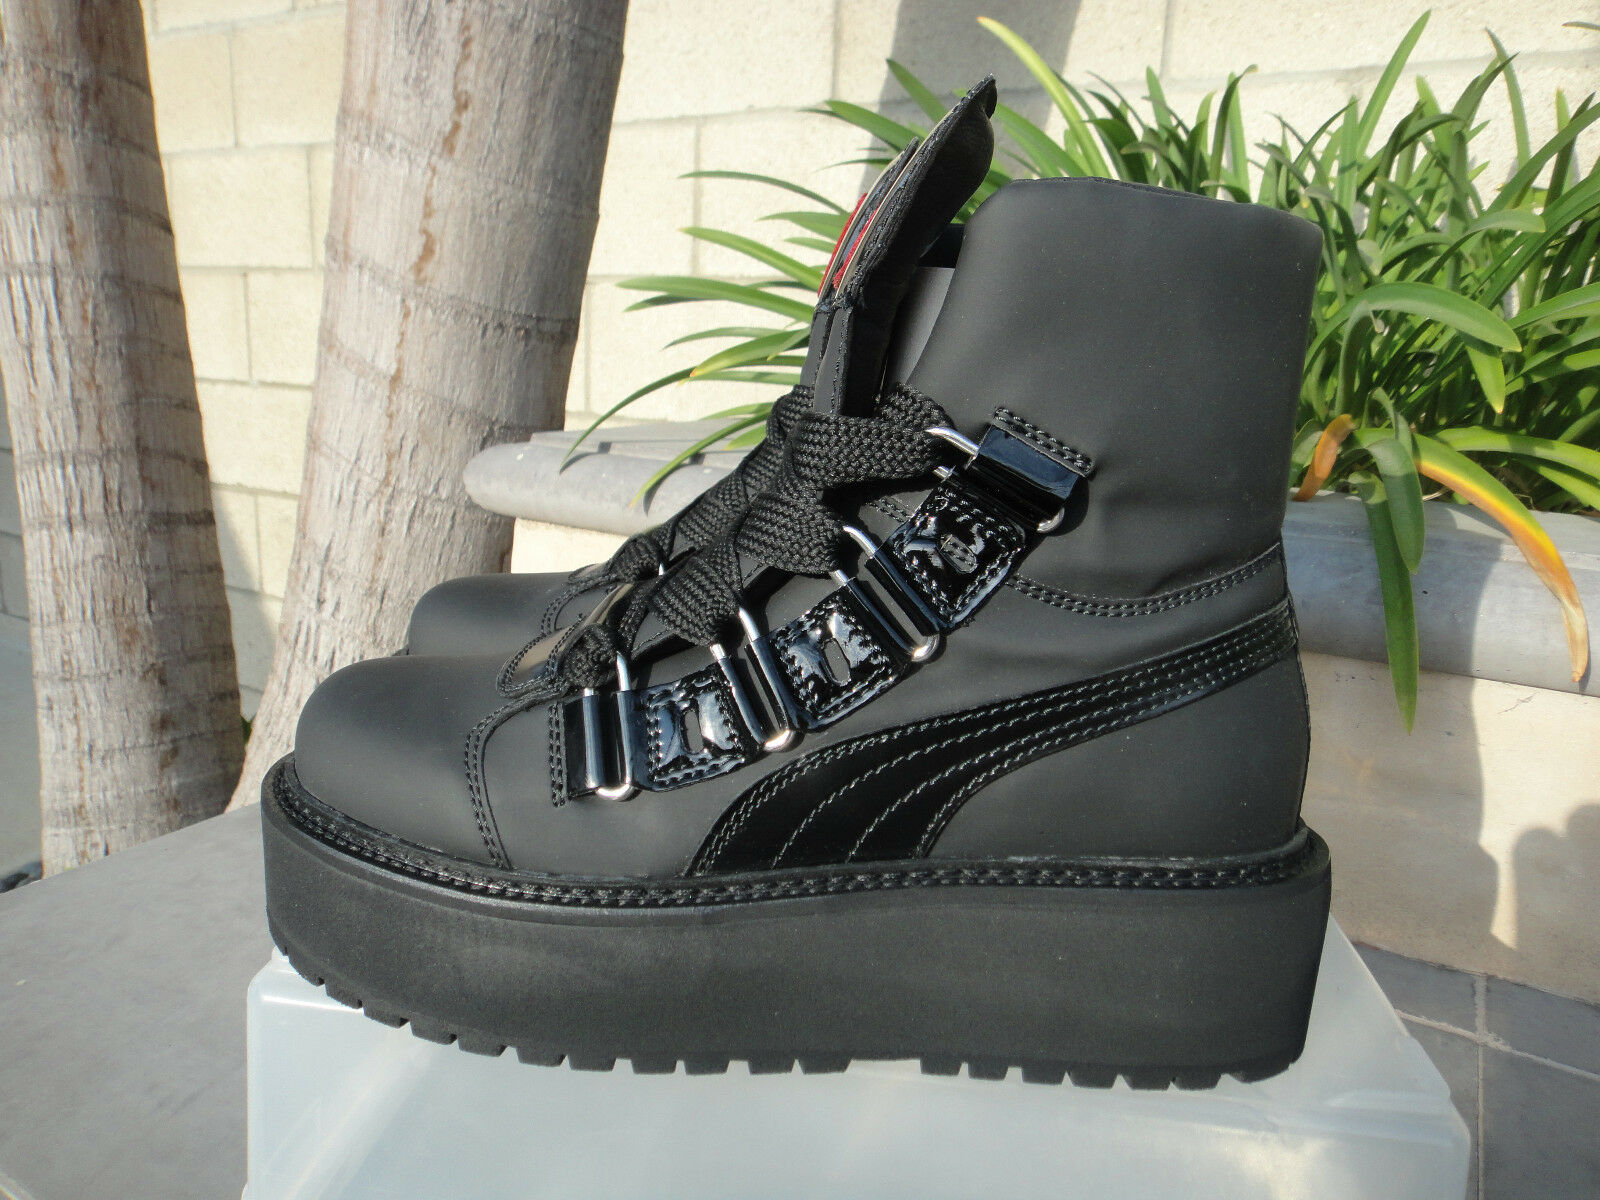 Fenty Puma by Rihanna, SNEAKER BOOT, BLACK EYELET, Mens US 10, 11, 12(SO)  or 13